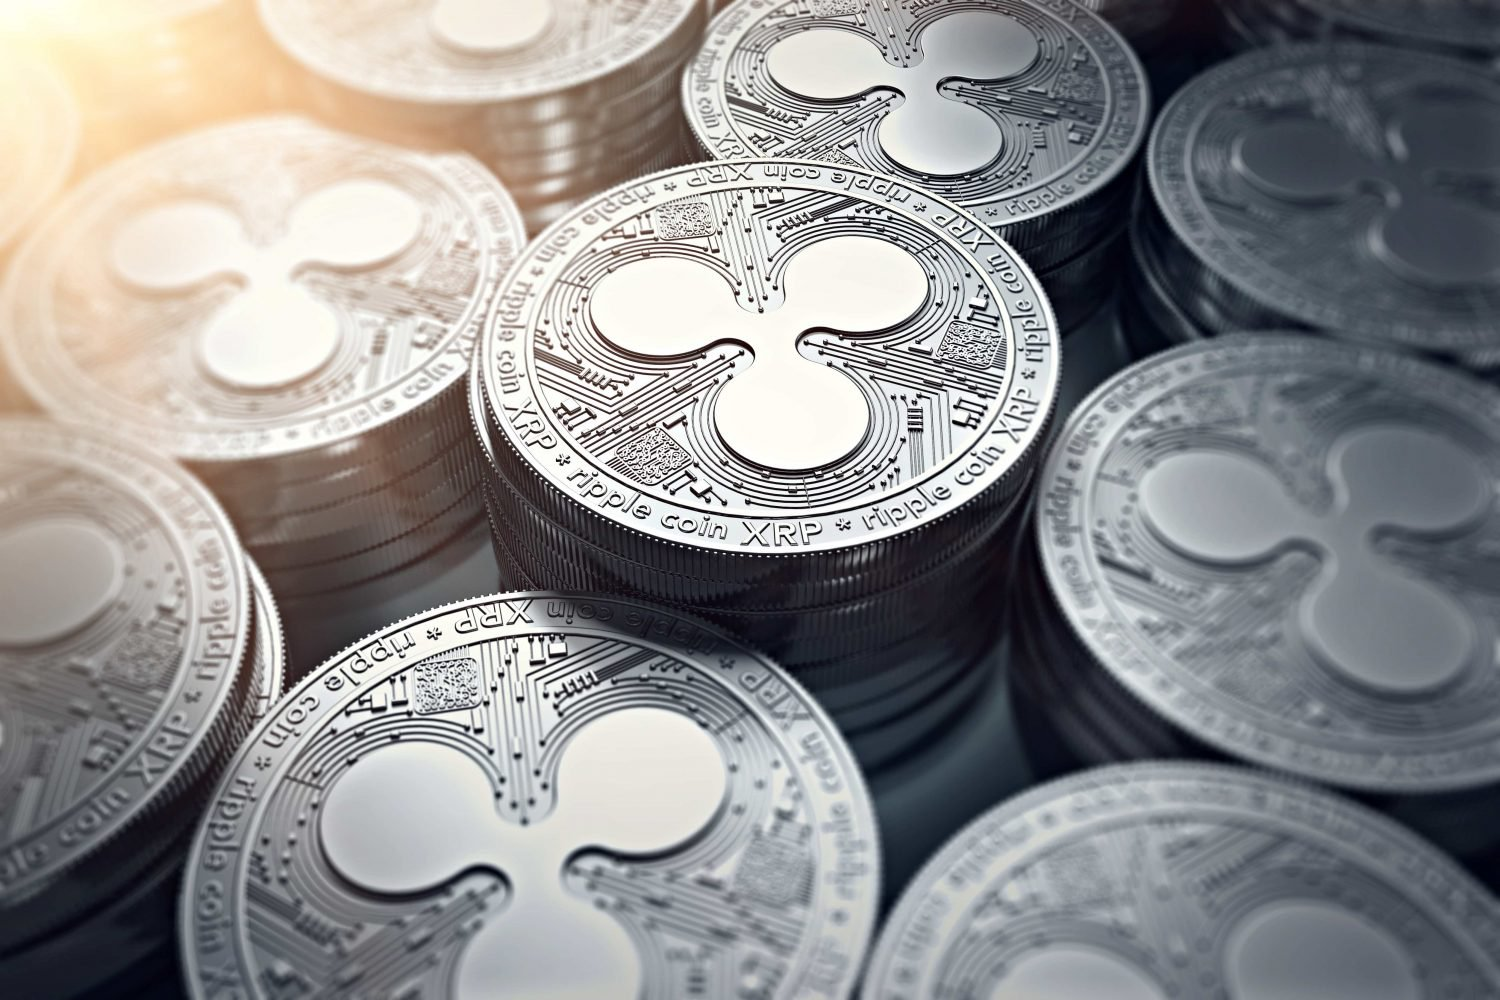 XRP To Hit $5 Before The End Of 2019 According To The Latest